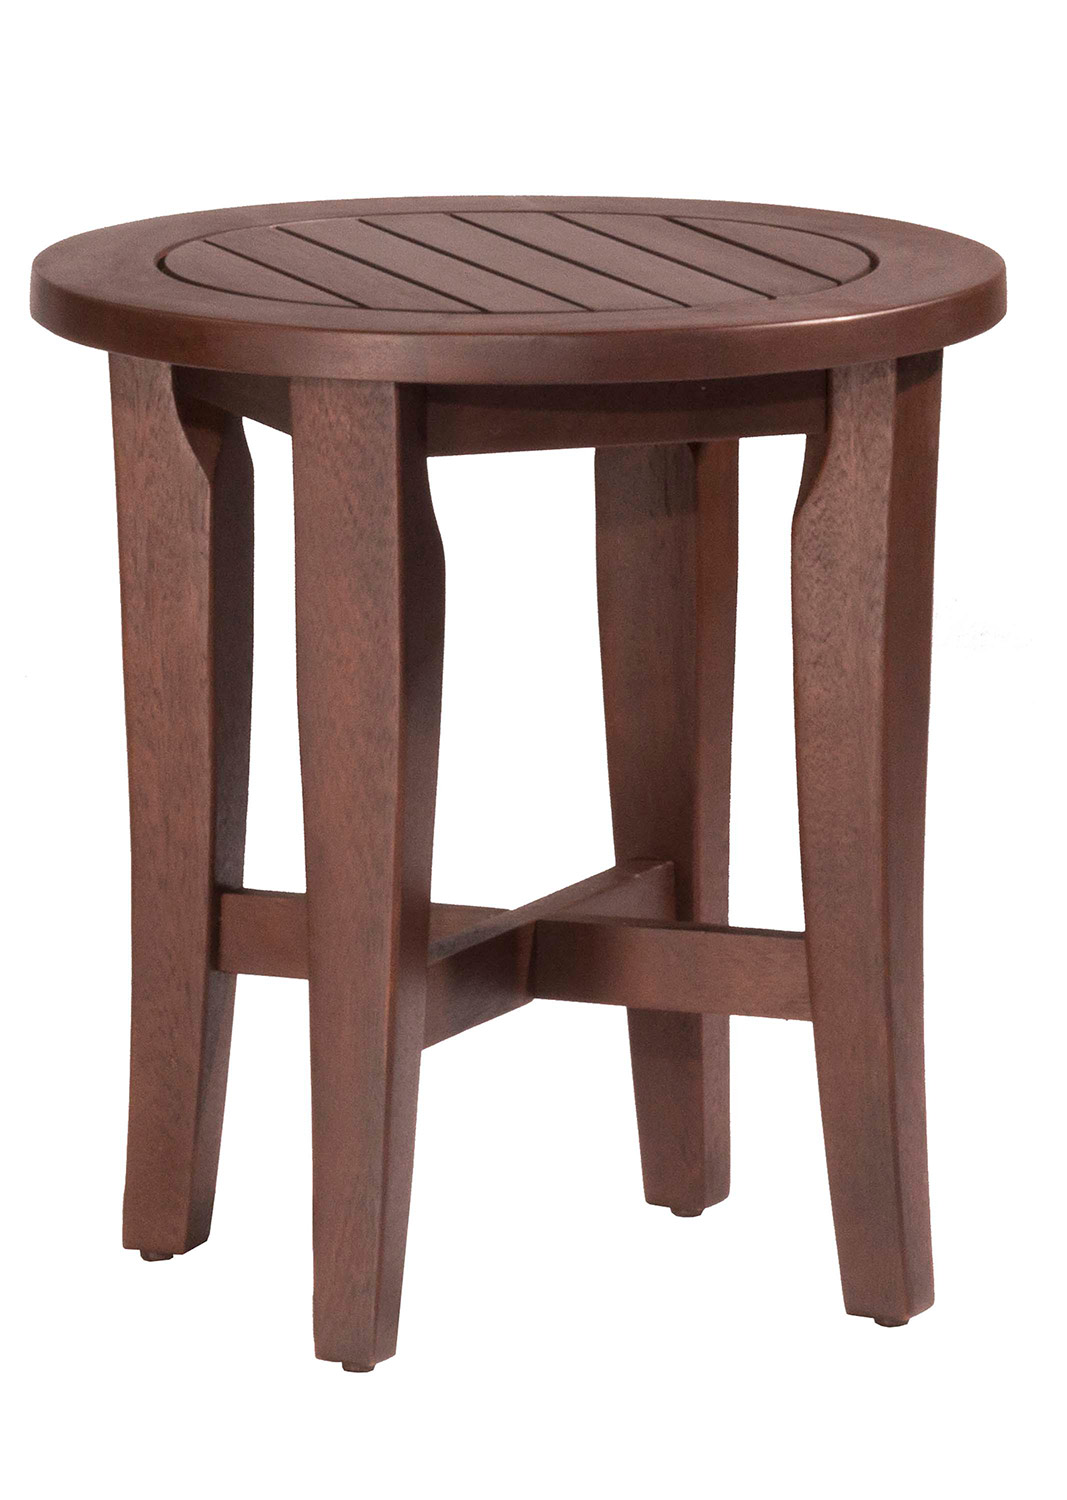 Hillsdale Preston Round Vanity Stool - Walnut